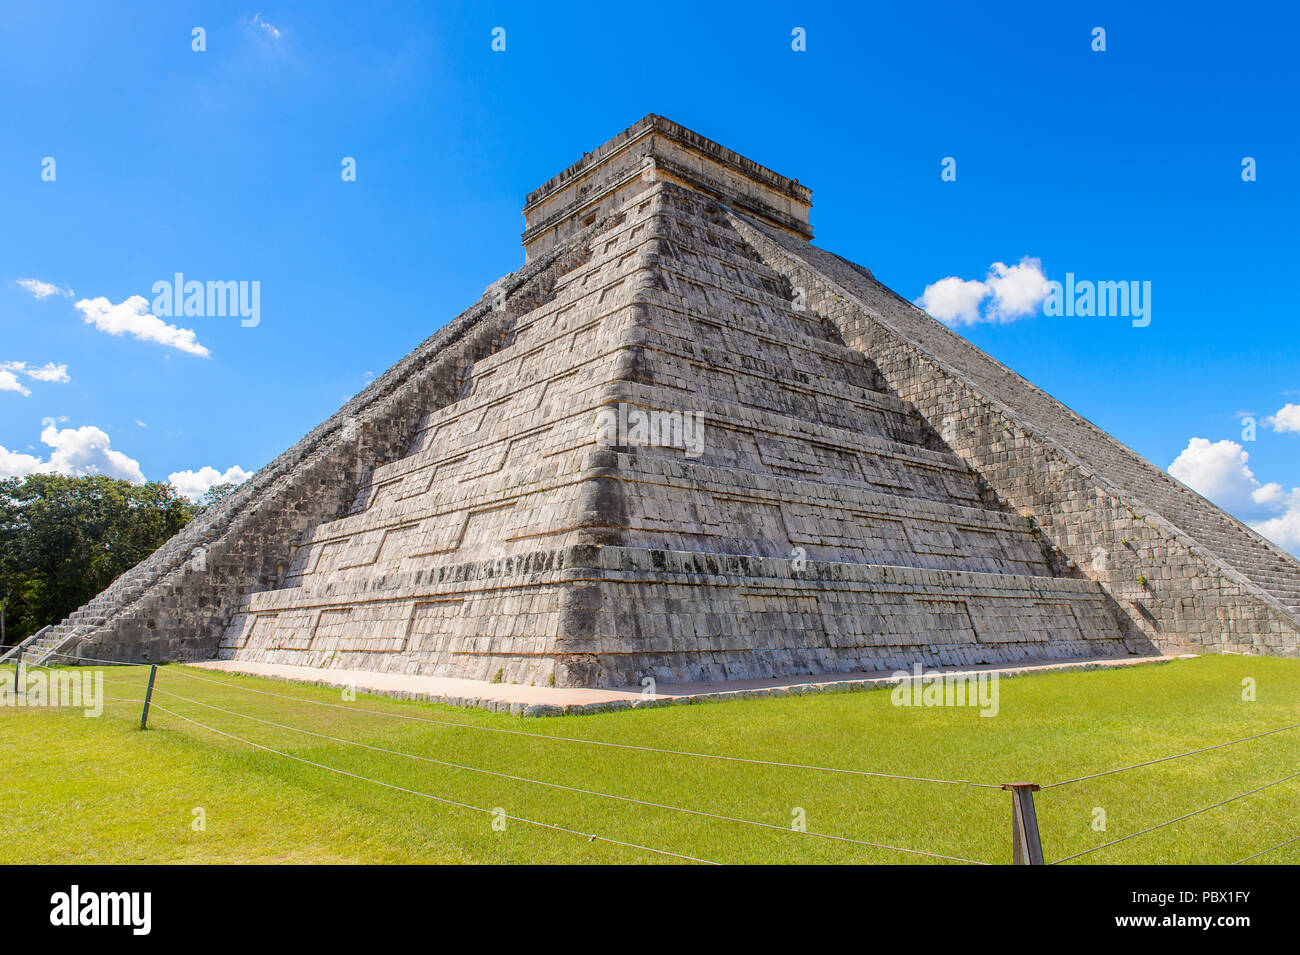 El Castillo (Temple of Kukulcan),  a Mesoamerican step-pyramid, Chichen Itza. It was a large pre-Columbian city built by the Maya people of the Termin - Stock Image